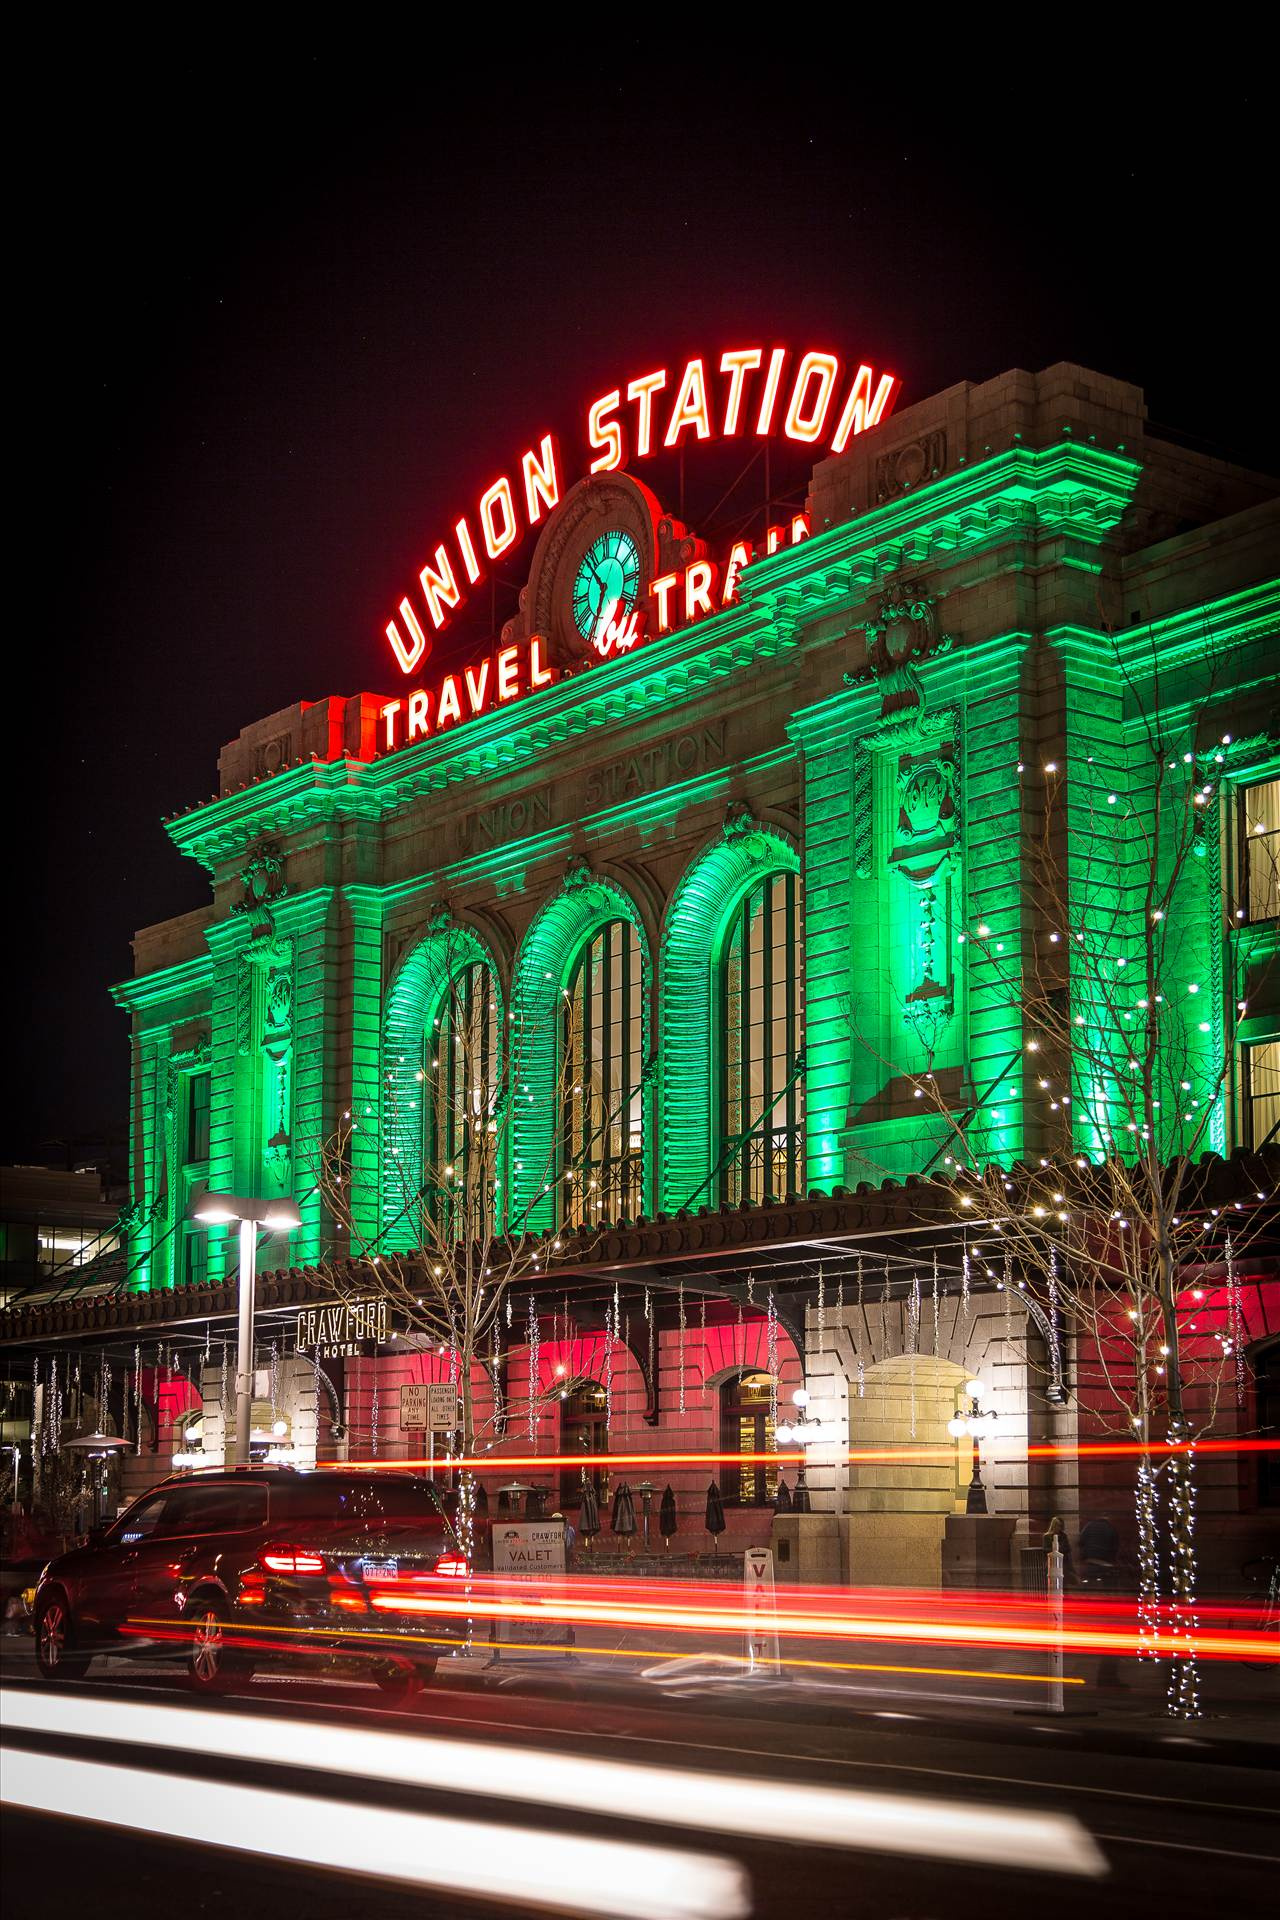 Denver Union Station at Christmas 2 - Union Station, Denver Colorado at Christmas by D Scott Smith